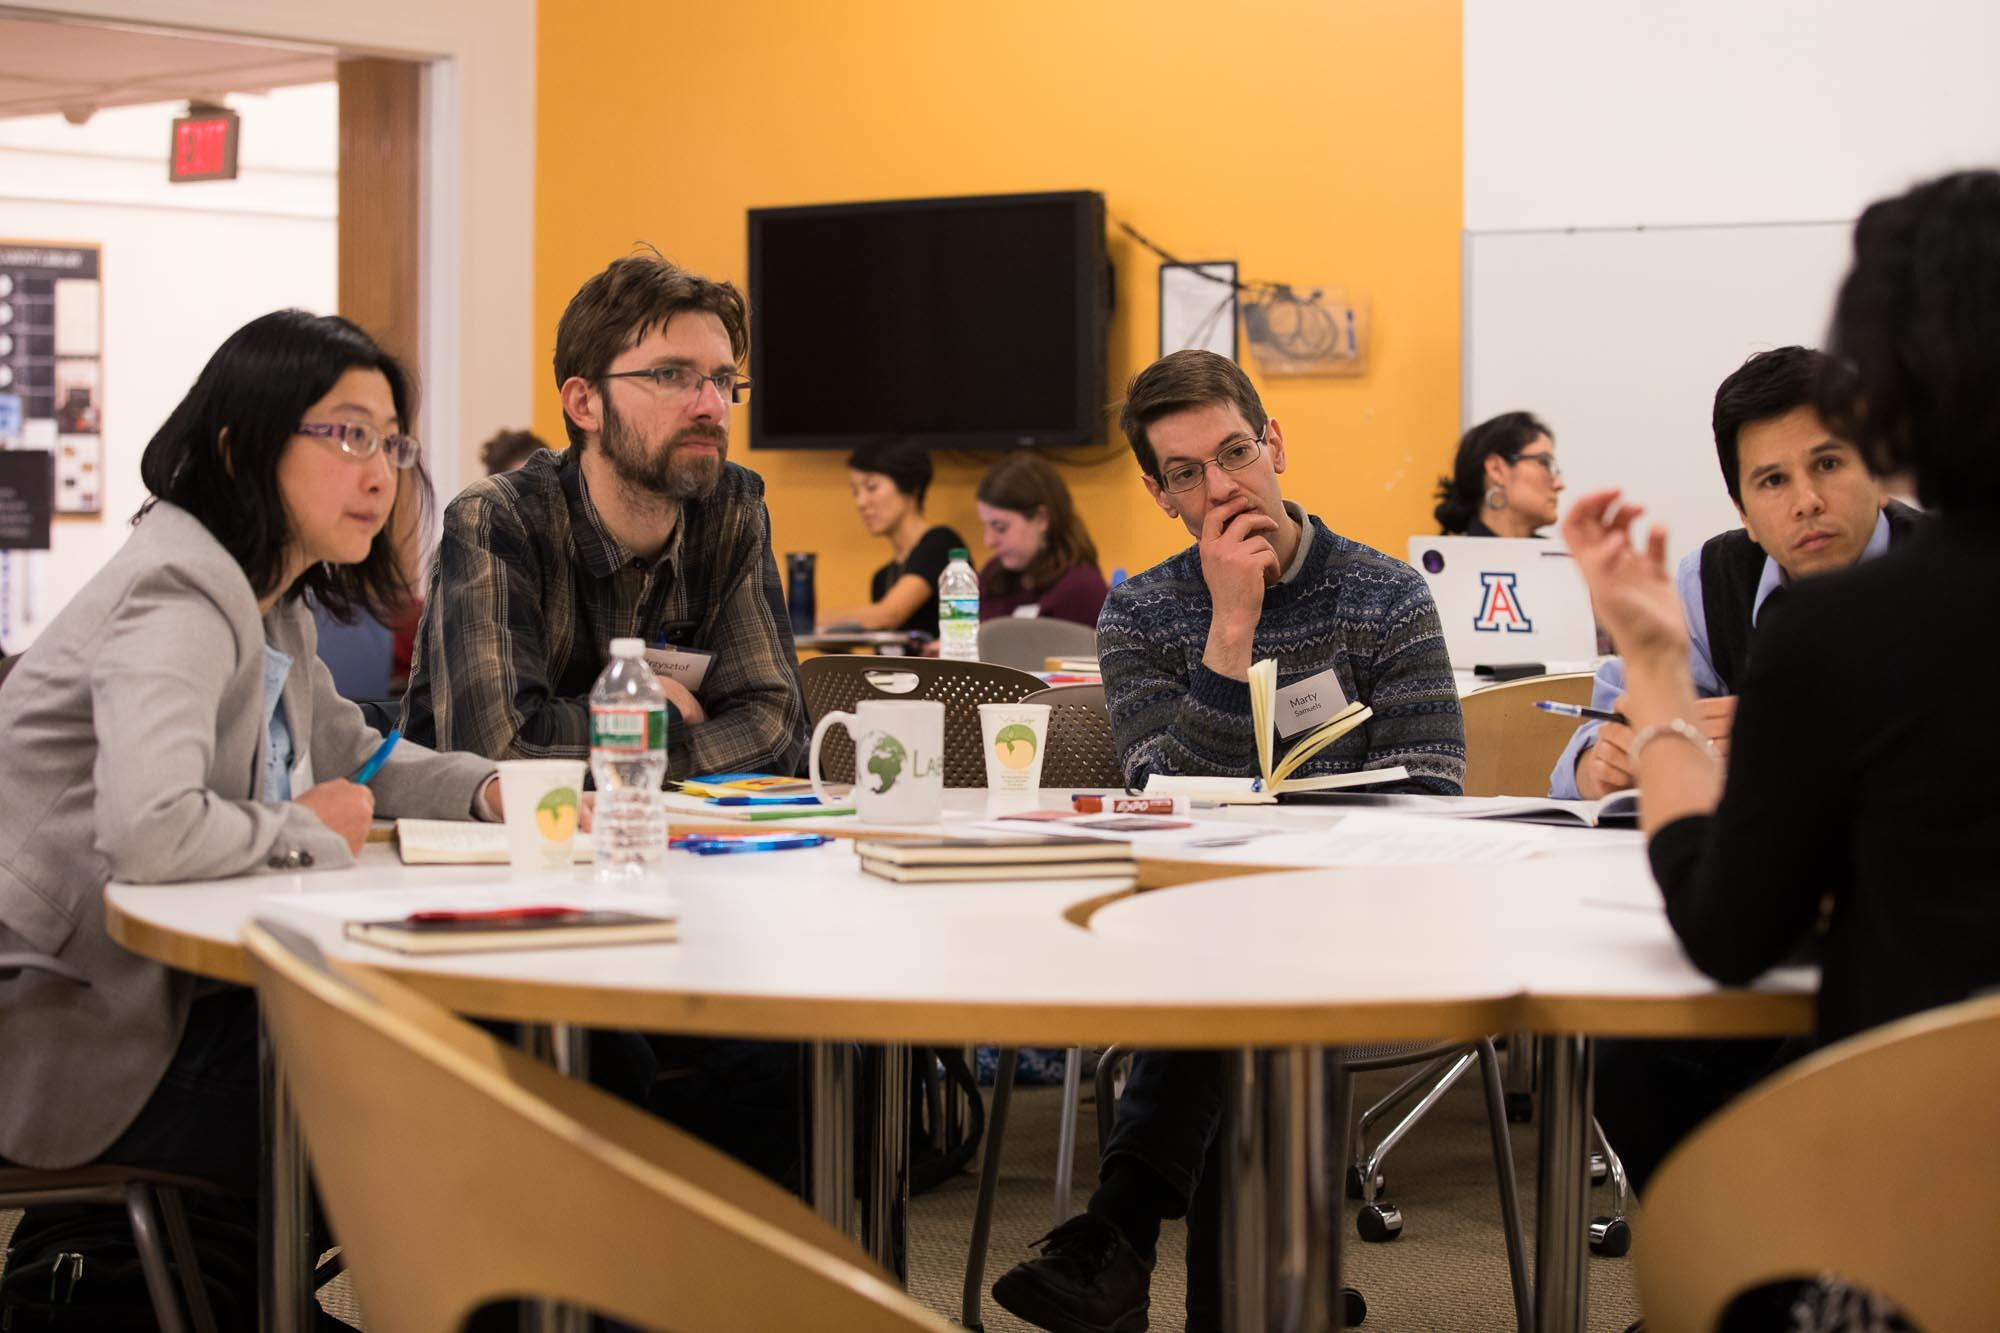 Faculty and staff sit around a circular table discussing teaching at a seminar